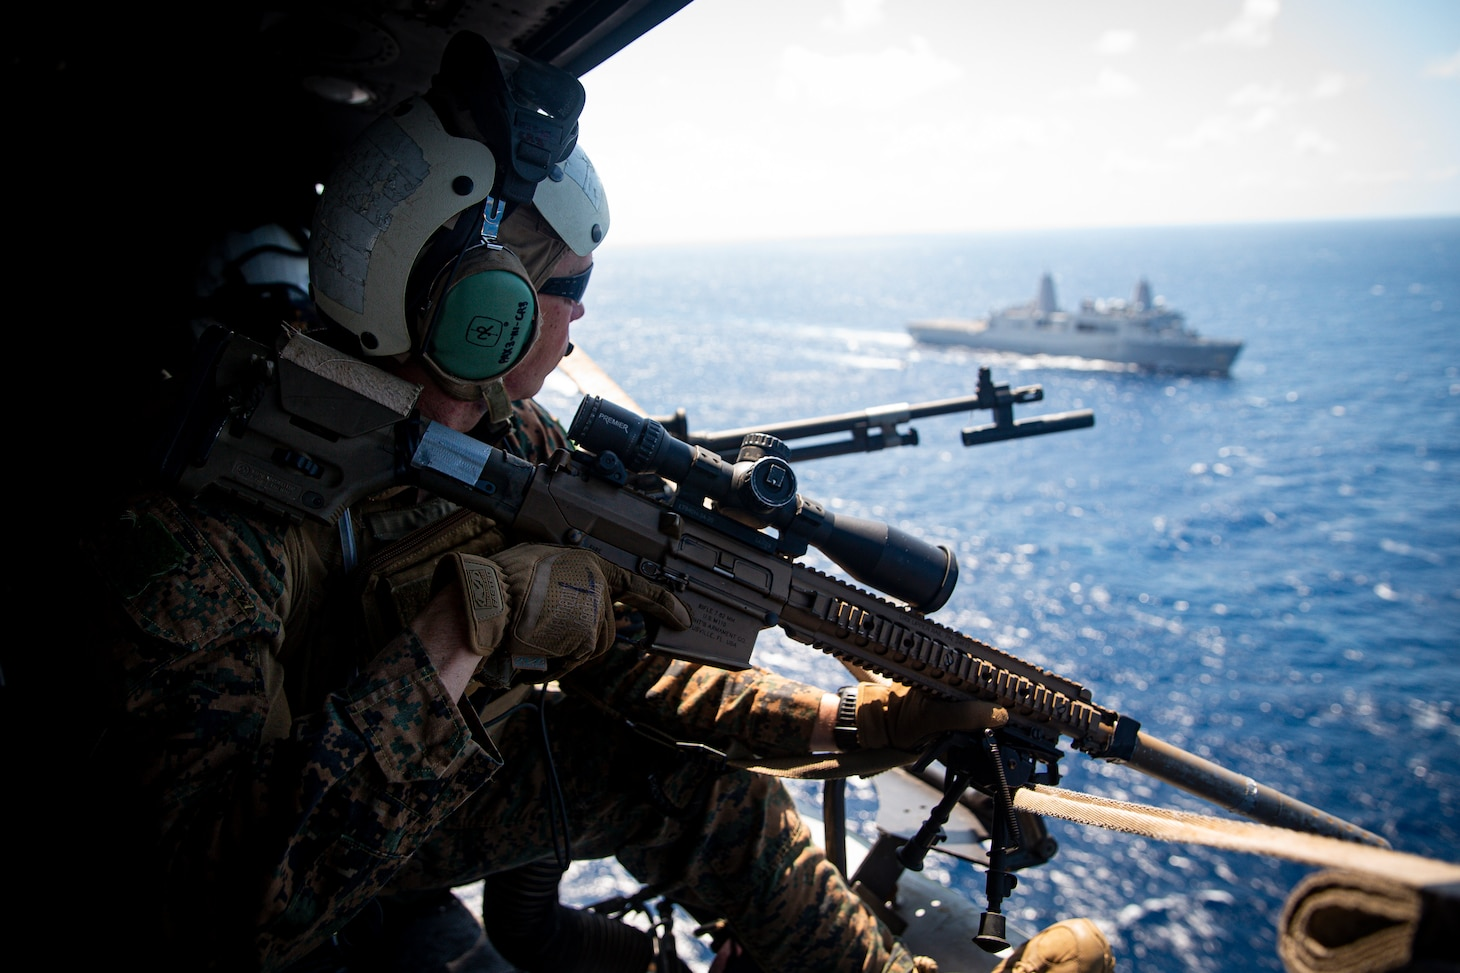 210623-M-TS451-2483 PHILIPPINE SEA - A U.S. Marine with Force Reconnaissance Platoon, 31st Marine Expeditionary Unit (MEU), observes the Philippine Sea while in route to the USS Germantown (LSD 42) to conduct a Maritime Interdiction Operation (MIO) training exercise June 24, 2021. The MIO consisted of Force Reconnaissance Marines fast roping on to the USS Germantown and executing a search and seizure scenario with support from the Battalion Landing Team 3/5 as the security element. The 31st MEU is operating aboard ships of the America Amphibious Ready Group in the 7th fleet area of operation to enhance interoperability with allies and partners and serve as a ready response force to defend peace and stability in the Indo-Pacific region. (U.S. Marine Corps photo by Cpl. Karis Mattingly)